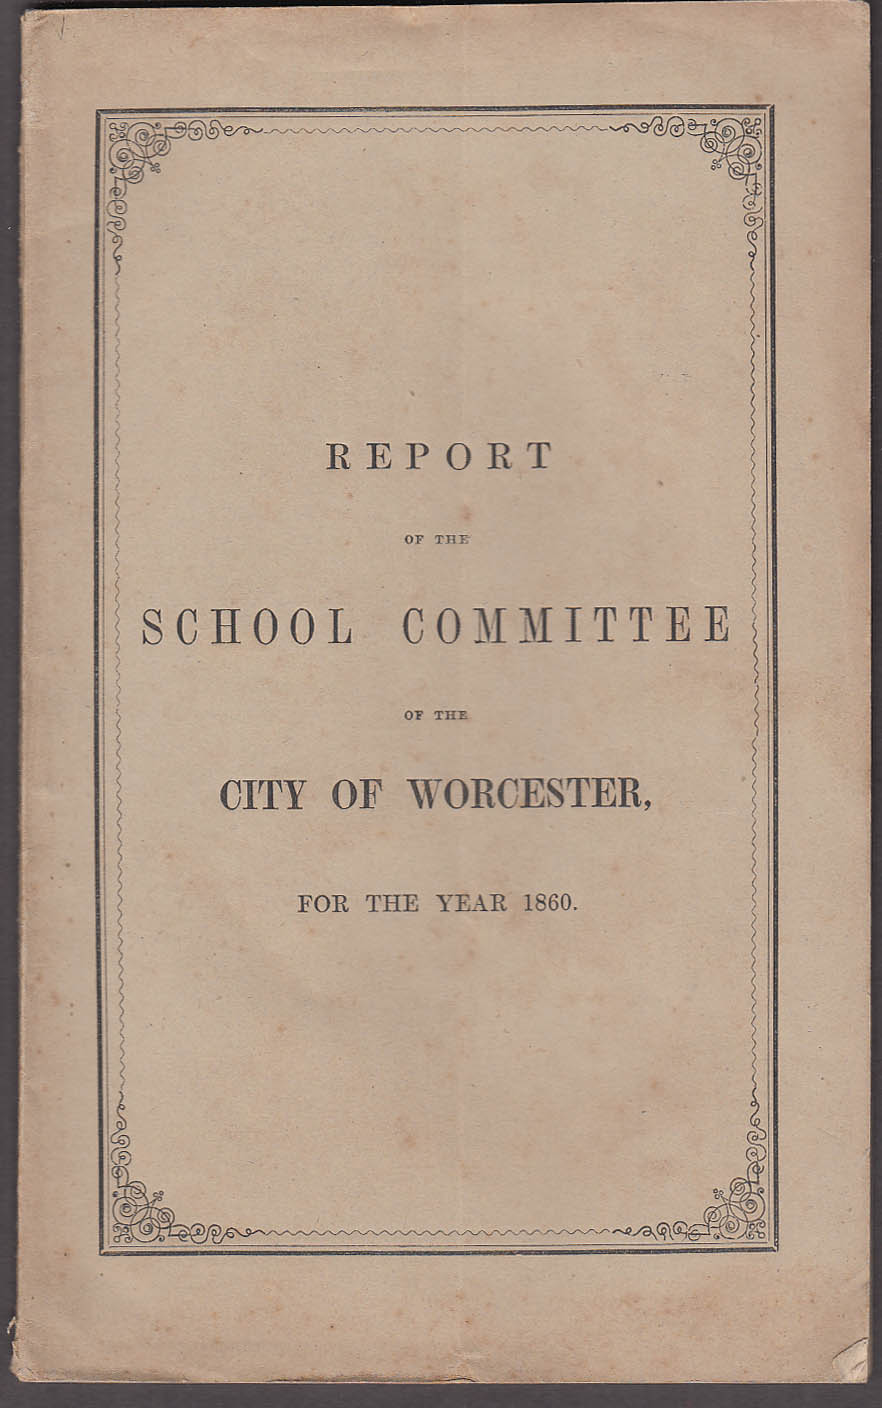 City of Worcester Report of the School Committee 1860 MA